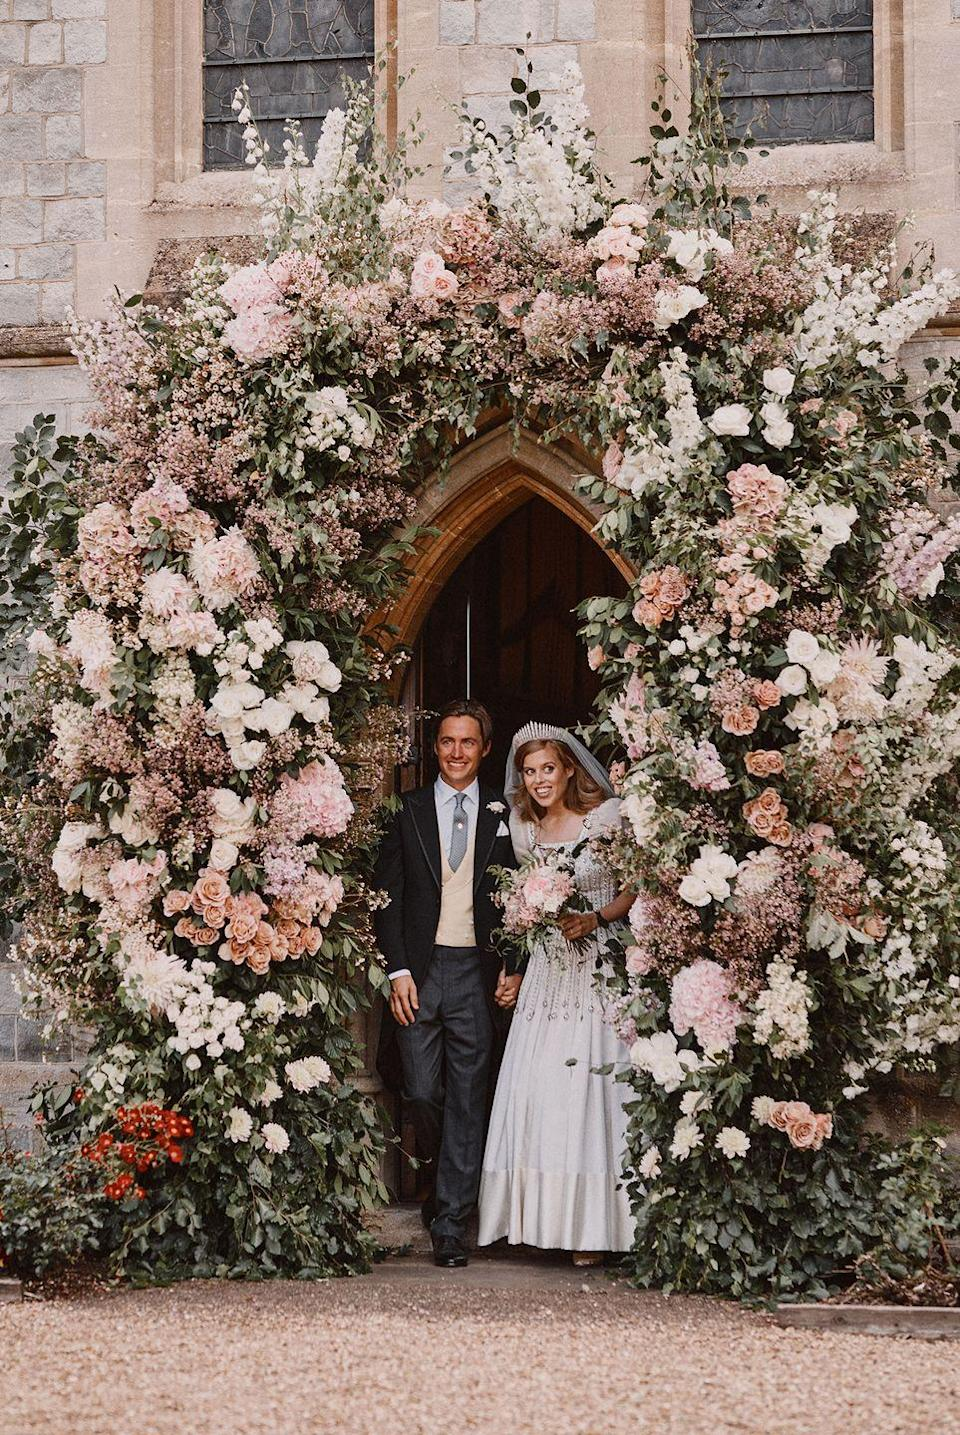 "<p>Here, another portrait of the happy couple as they exited the church.</p><p><a href=""https://www.townandcountrymag.com/society/tradition/a33350041/princess-beatrice-edoardo-mapelli-mozzi-wedding-photos/"" rel=""nofollow noopener"" target=""_blank"" data-ylk=""slk:See all the photos from their intimate wedding ceremony here."" class=""link rapid-noclick-resp"">See all the photos from their intimate wedding ceremony here. </a></p>"